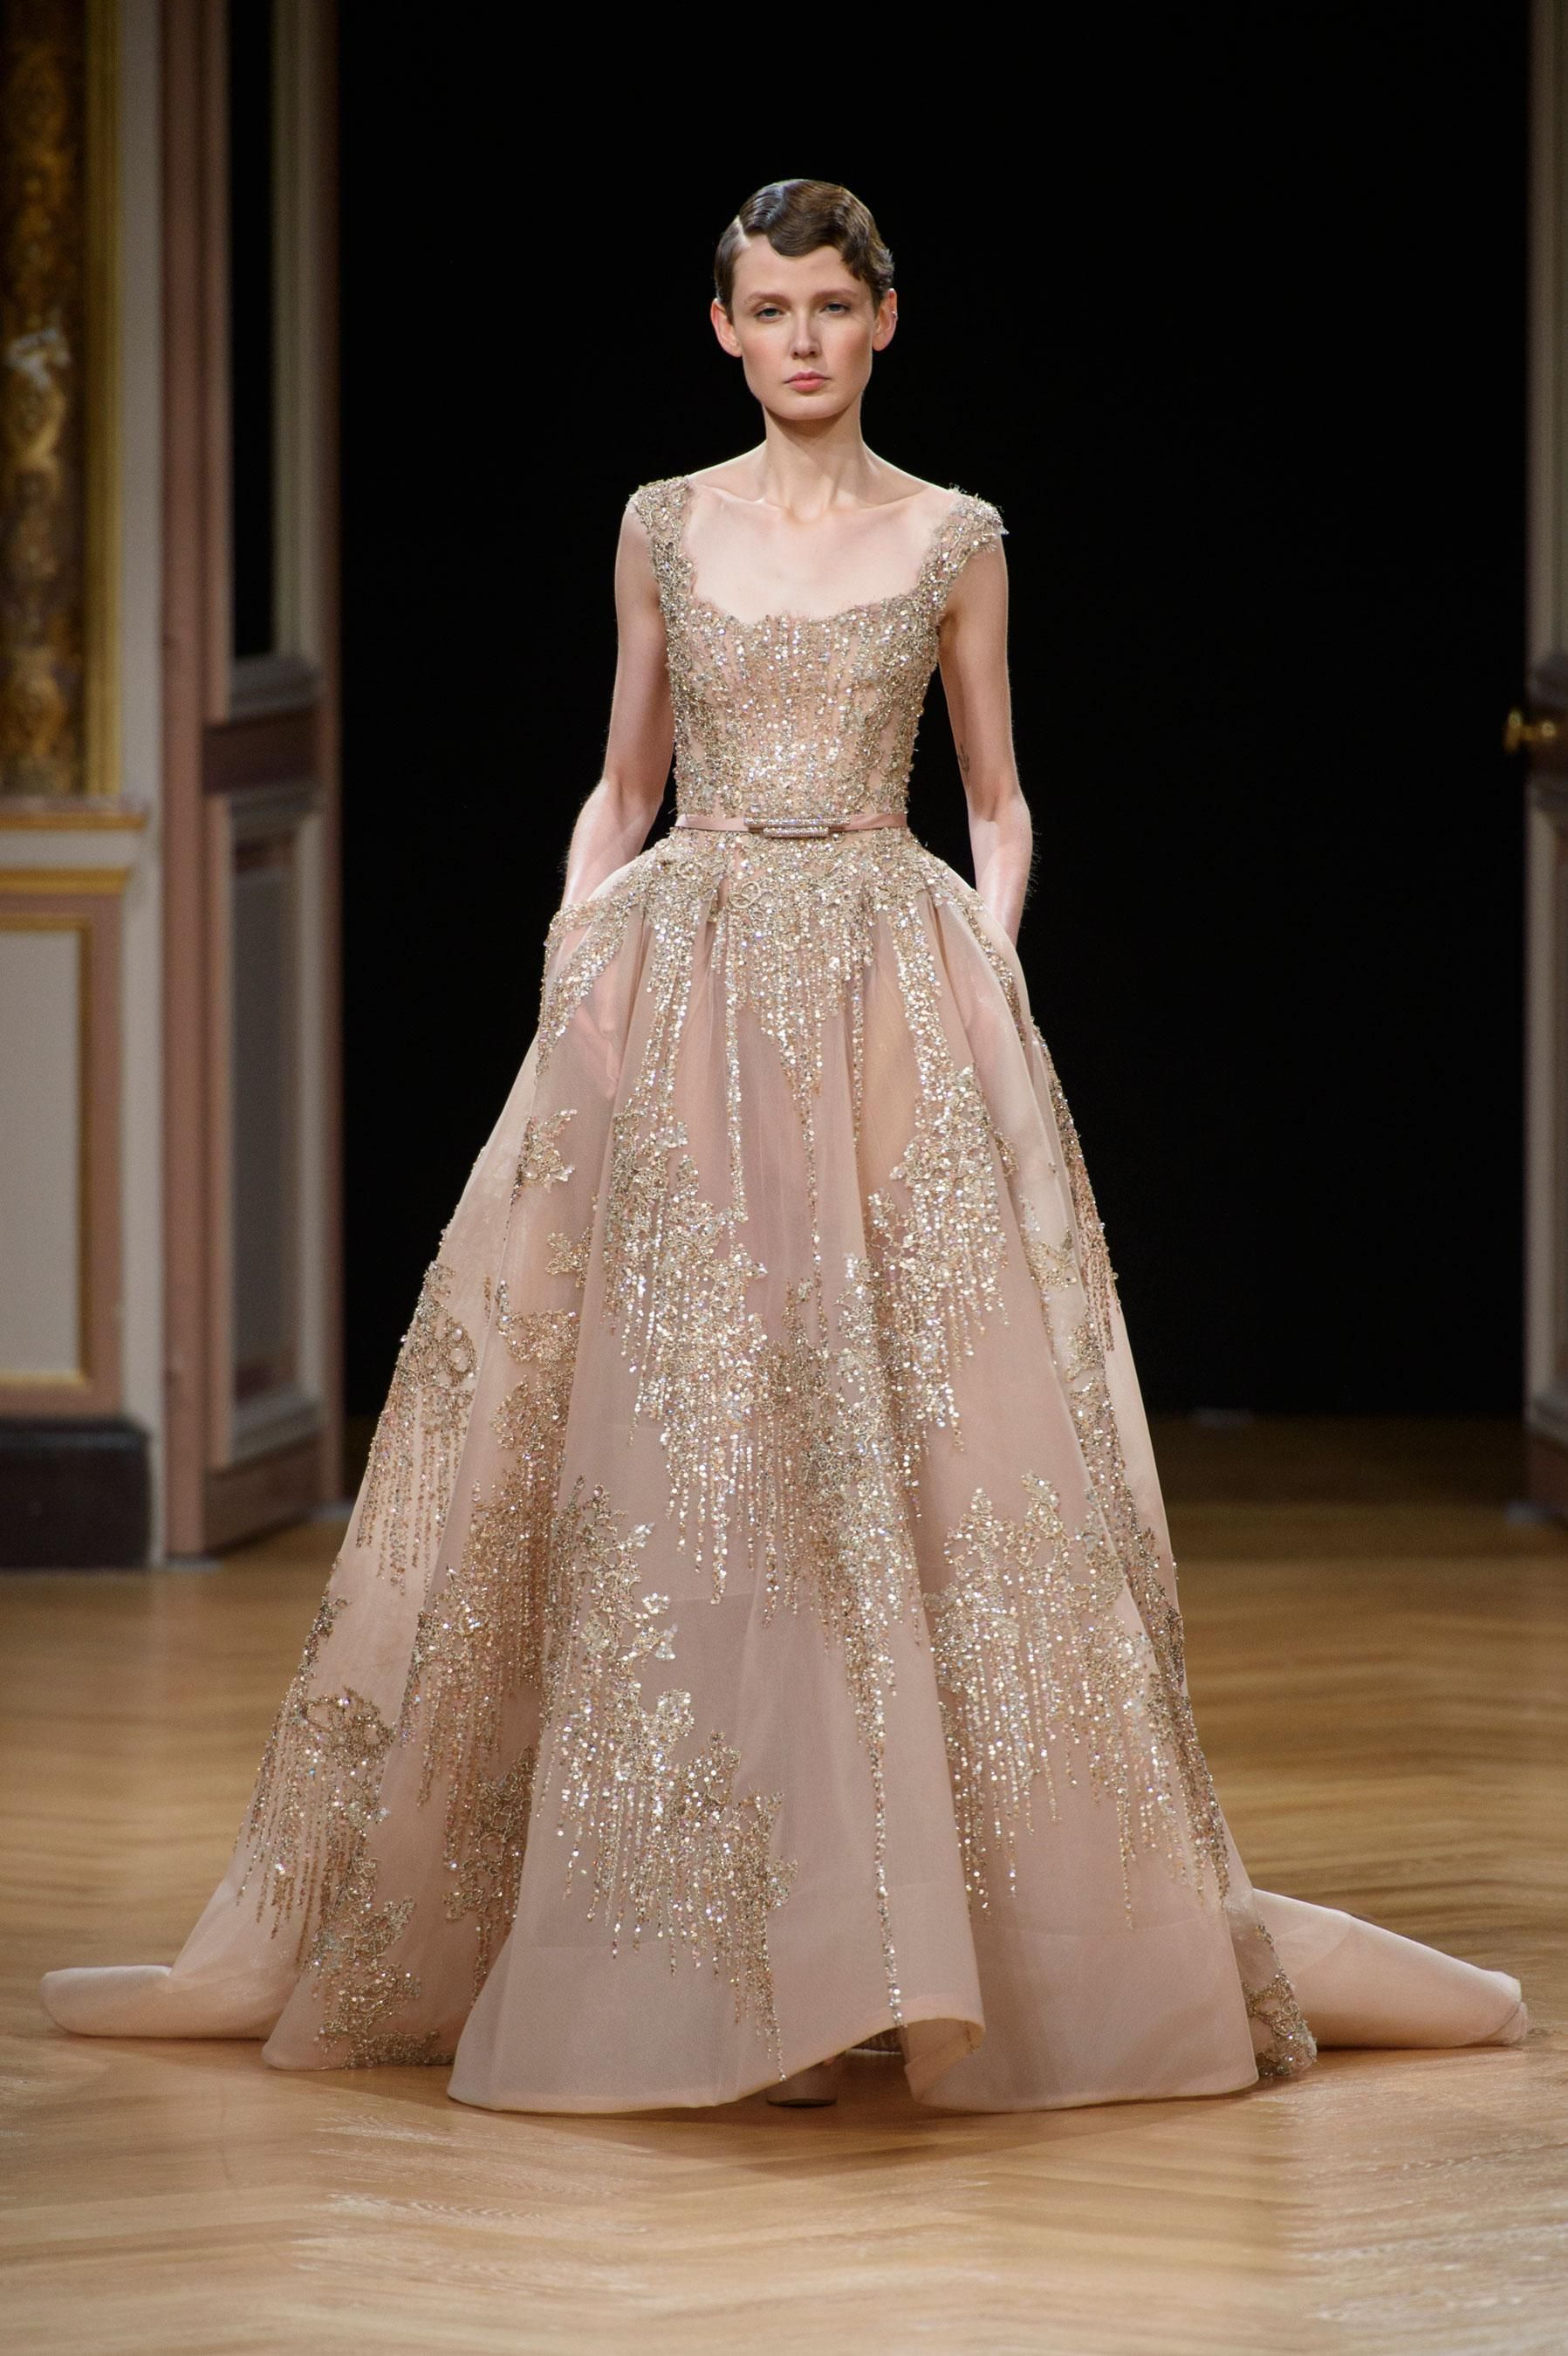 D Fil Ziad Nakad Automne Hiver 2016 2017 Haute Couture